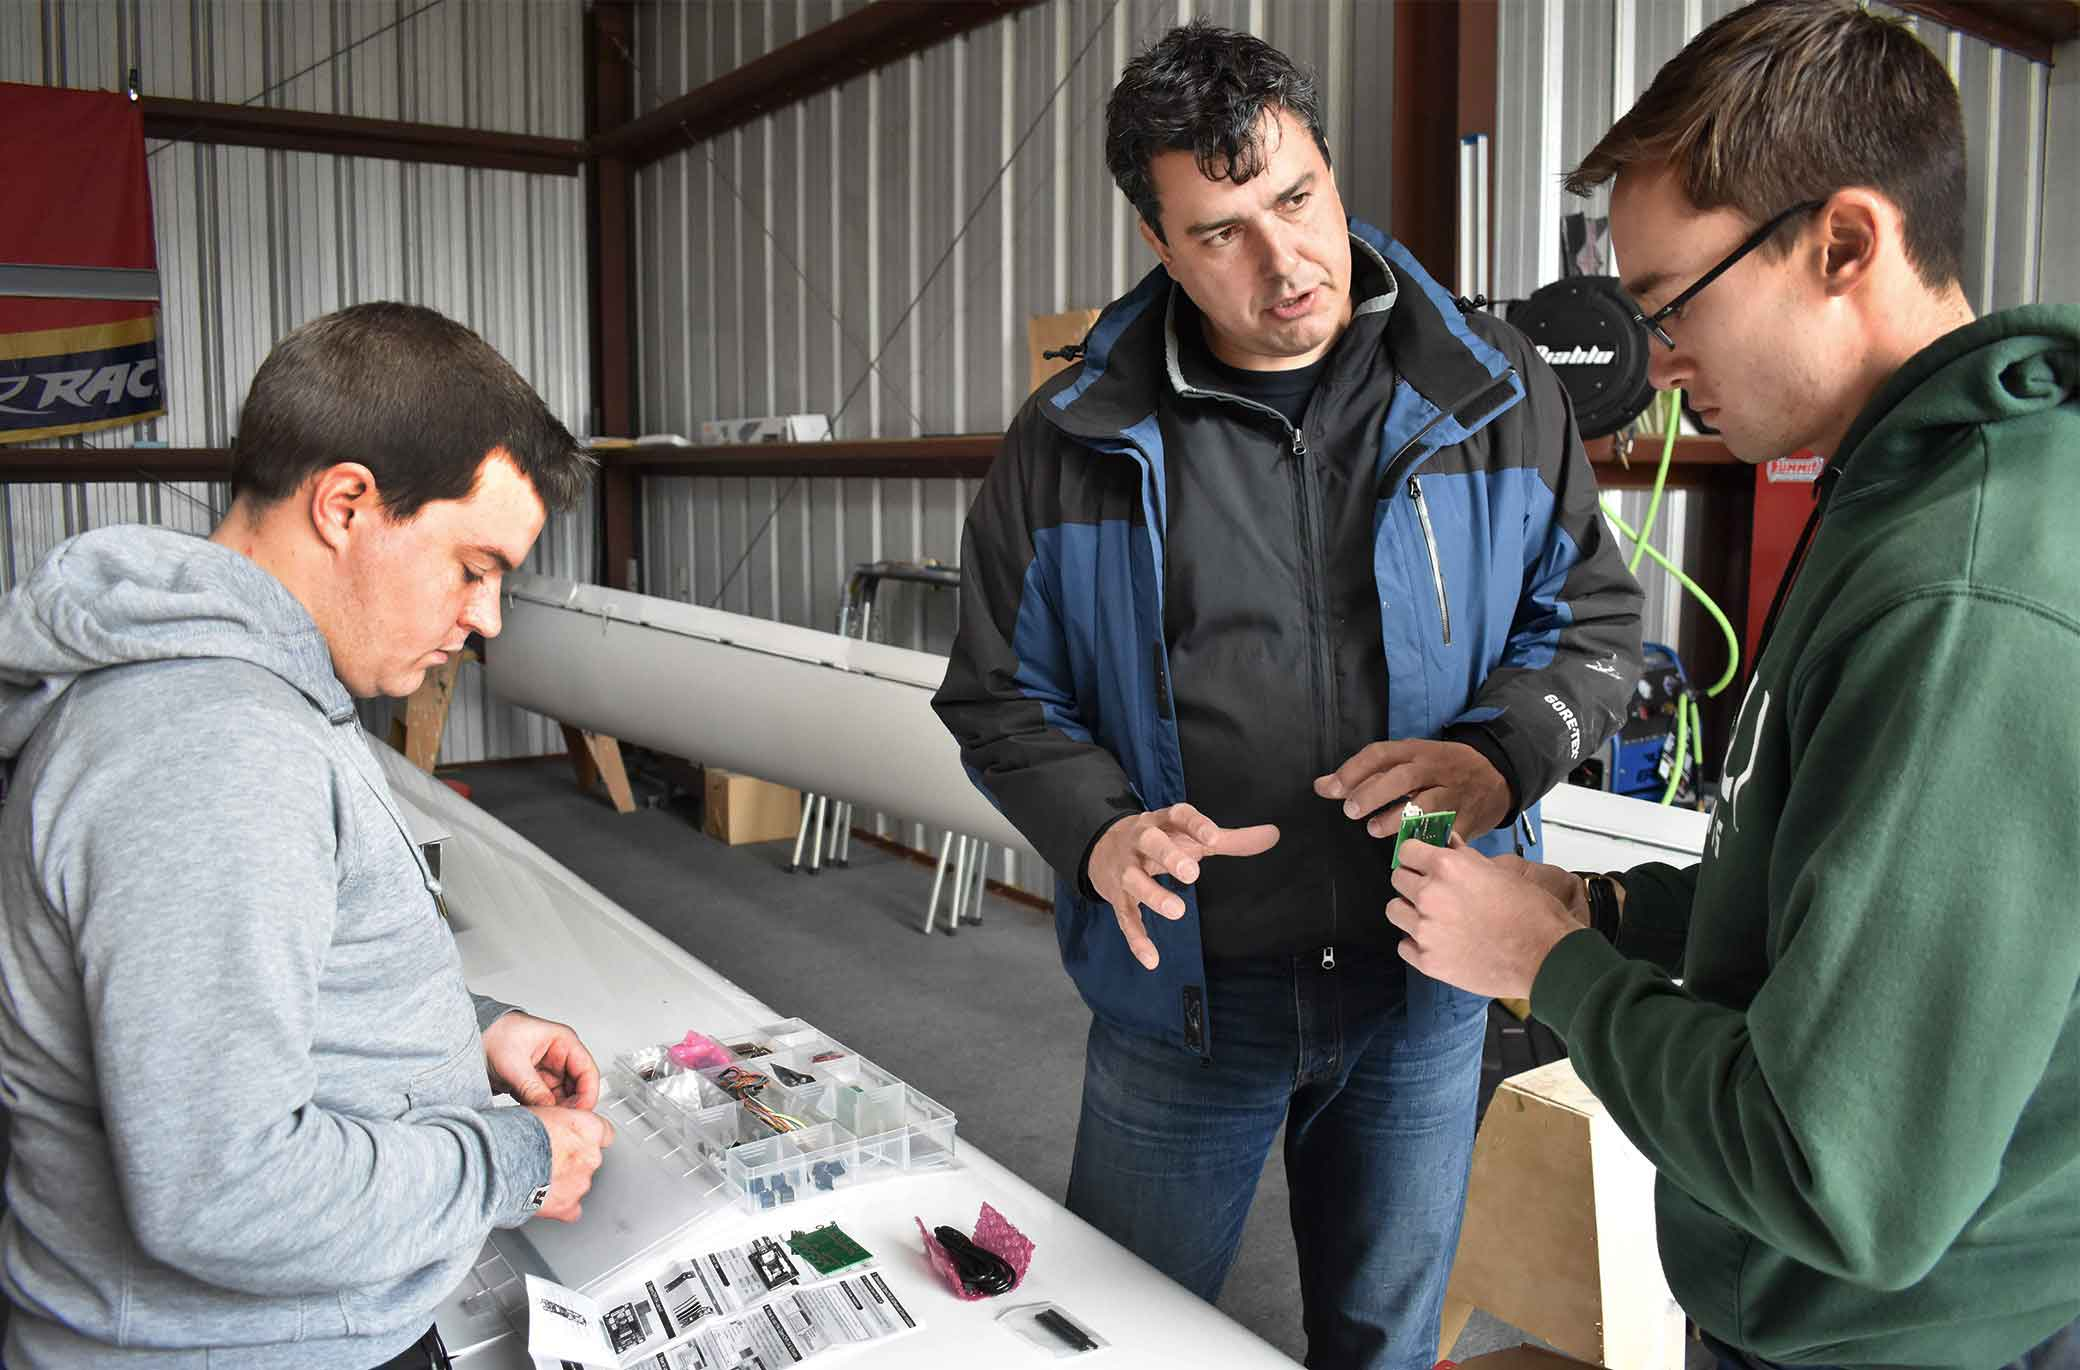 Aerospace engineering students Patrick Chizek, left, and Luke Bughman, right, work with Professor Paulo Iscold on his sail plane, which features a 93-foot wingspan.